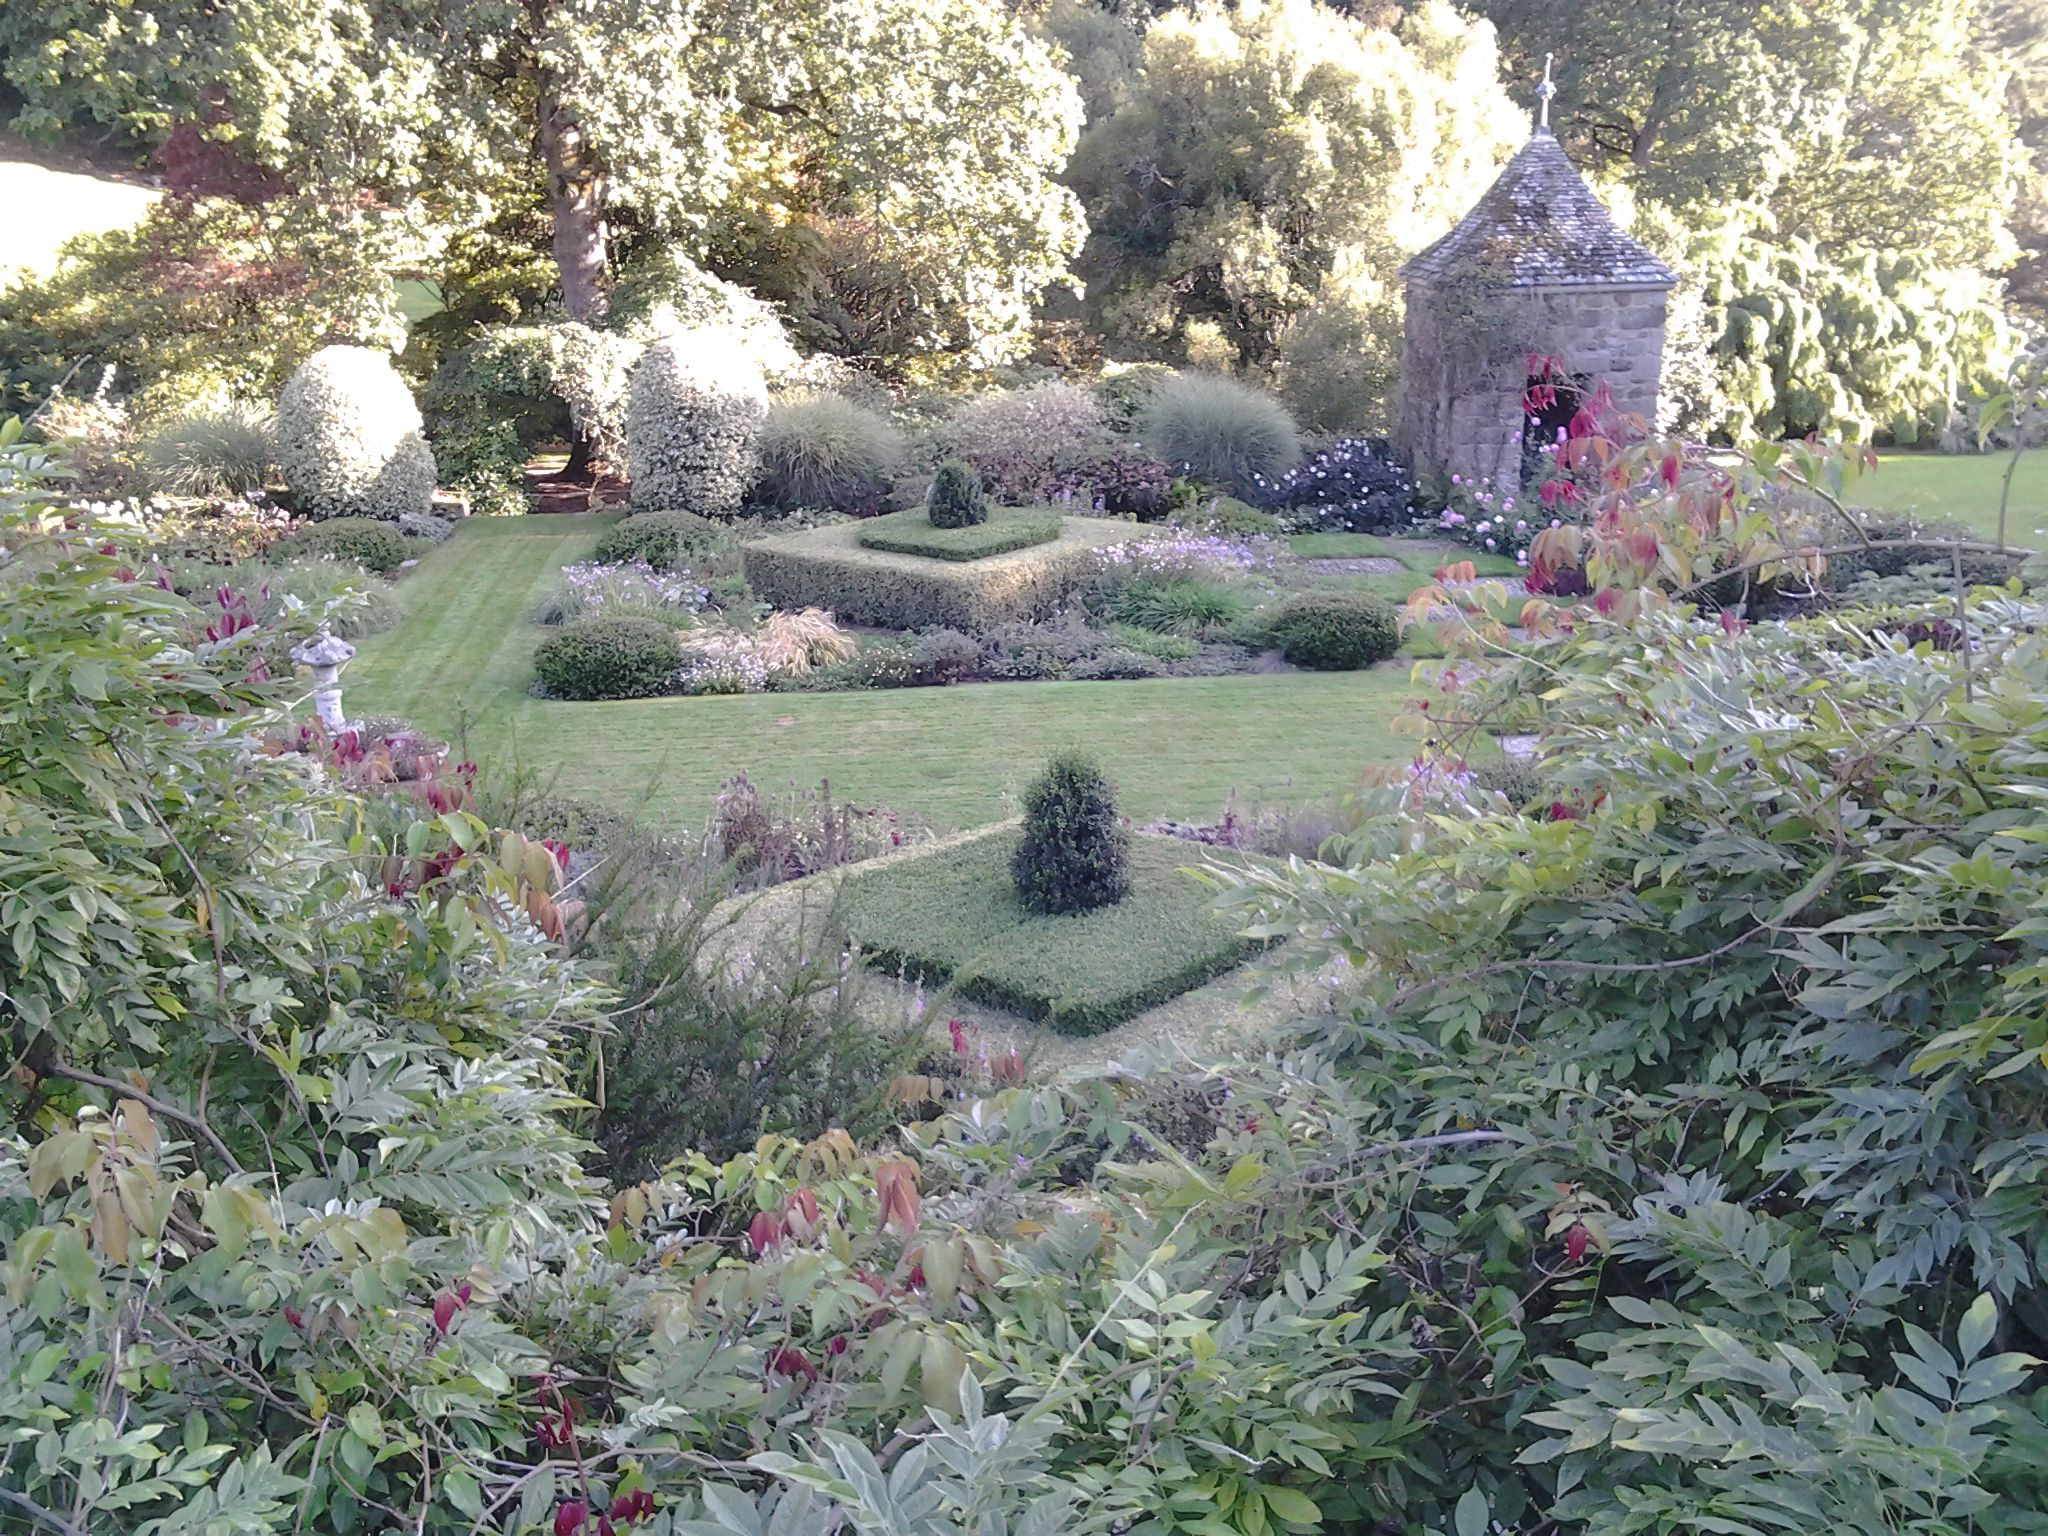 Top Gardens of France